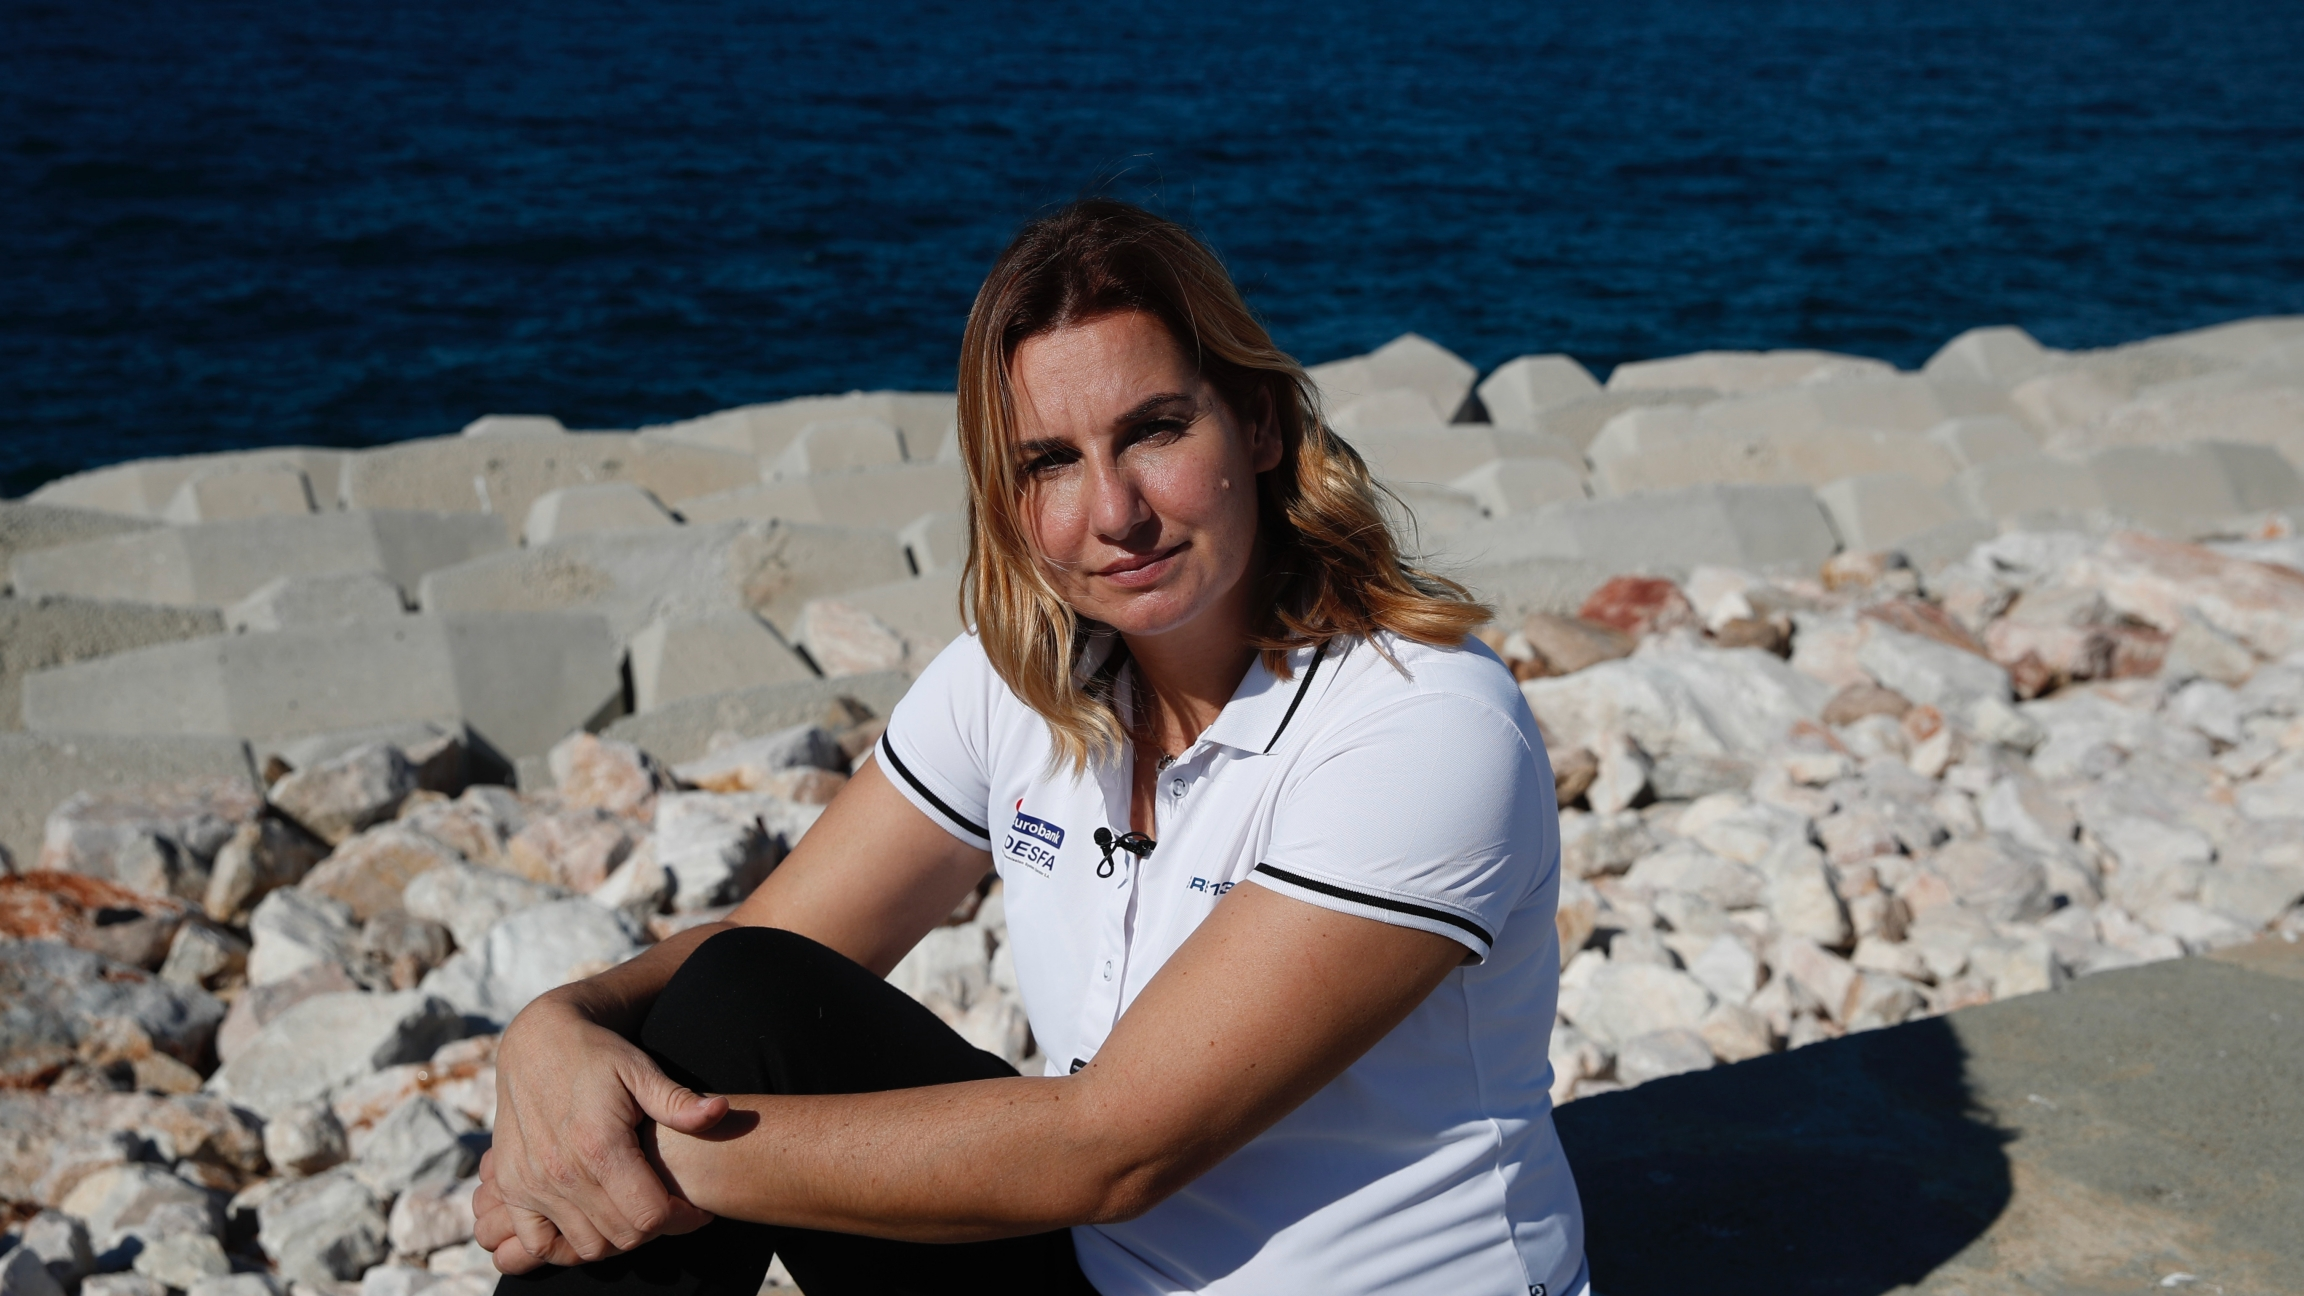 Greek Olympic sailing champion Sofia Bekatorou poses for a photograph during an interview for The Associated Press, at Agios Kosmas marina in southern Athens, Feb. 4, 2021. Bekatorou is the most successful female athlete in Greek sporting history who rece